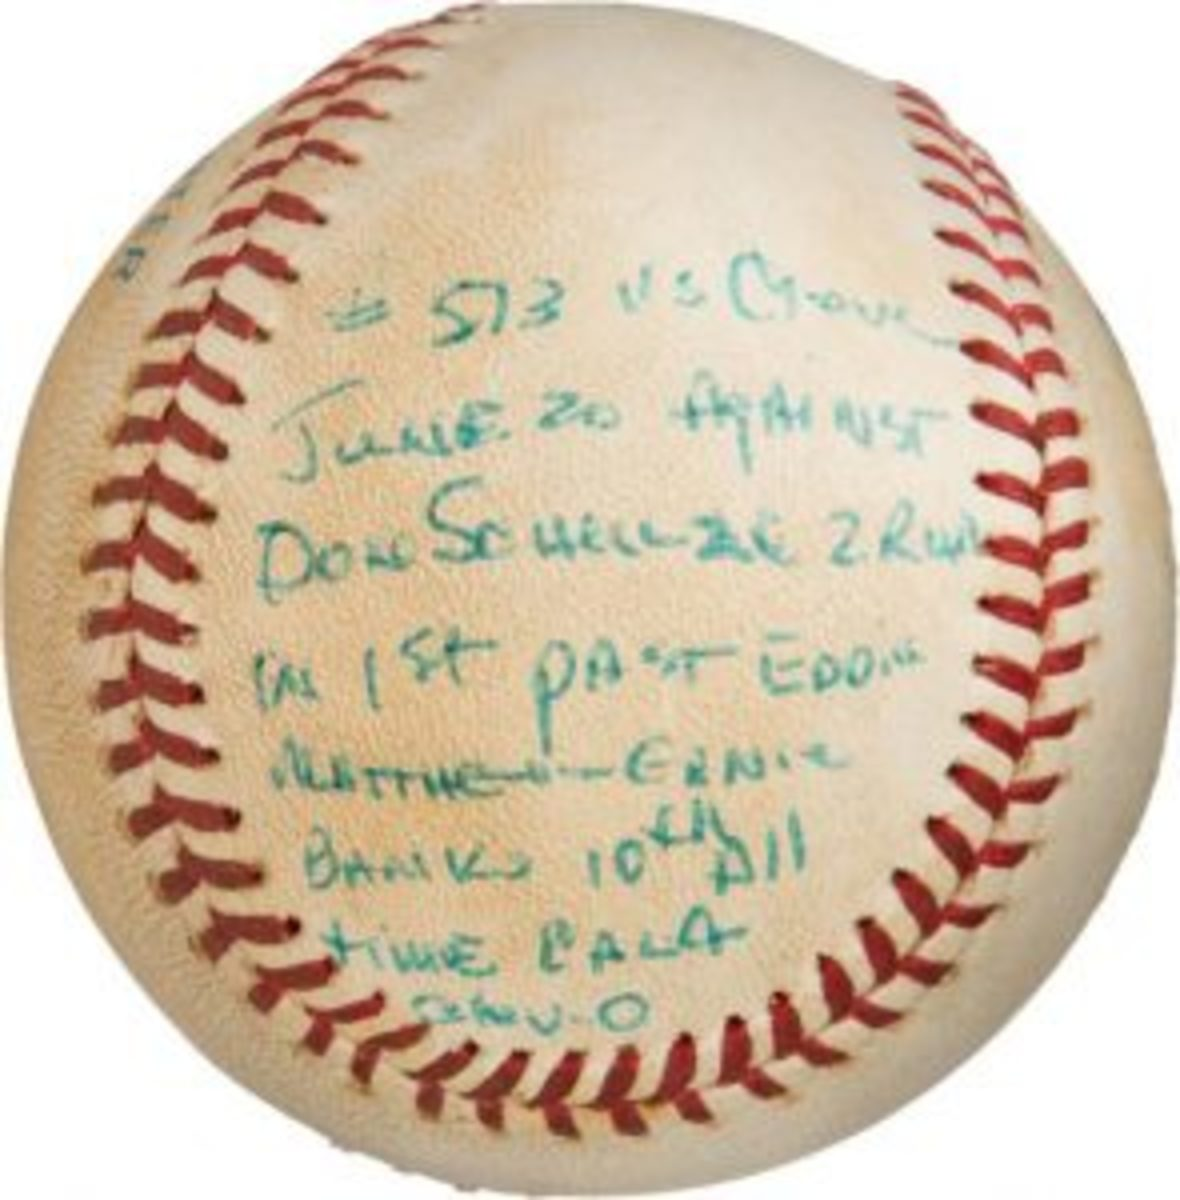 Reggie Jackson career home run baseball – No. 10 of 1985 season / No. 513 career (Photo courtesy Heritage Auctions)